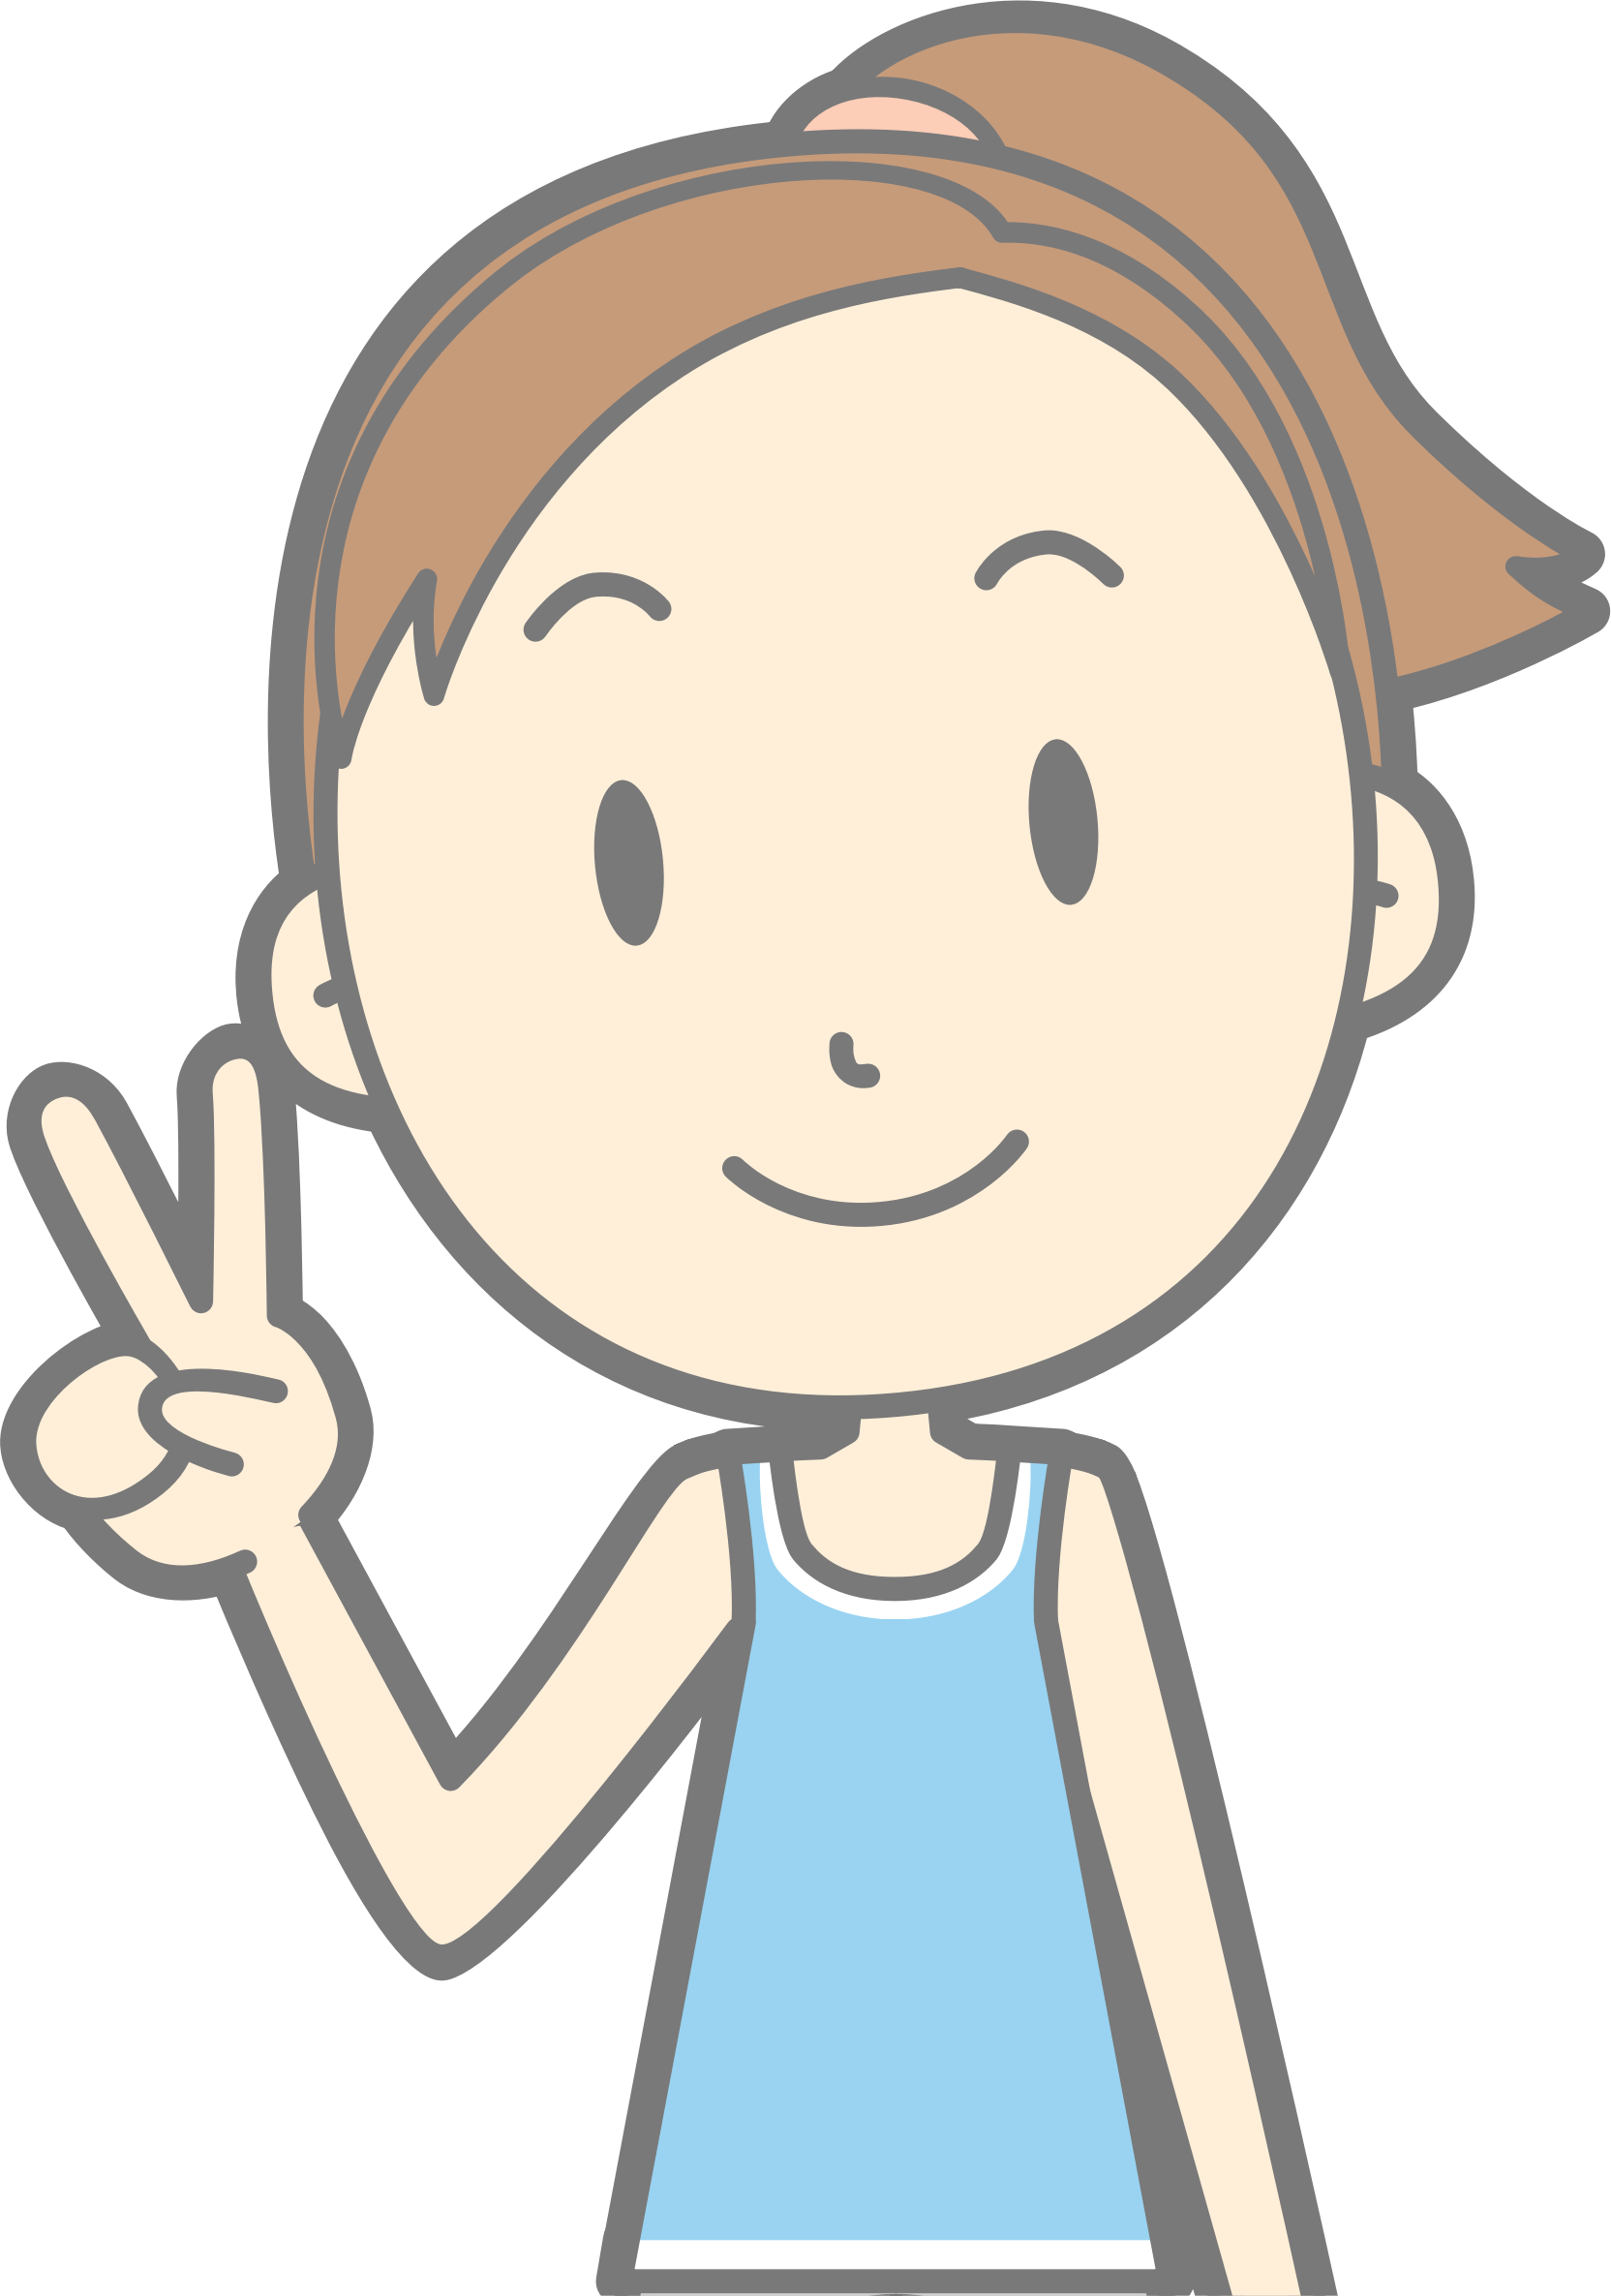 Sign big image png. Peace clipart child